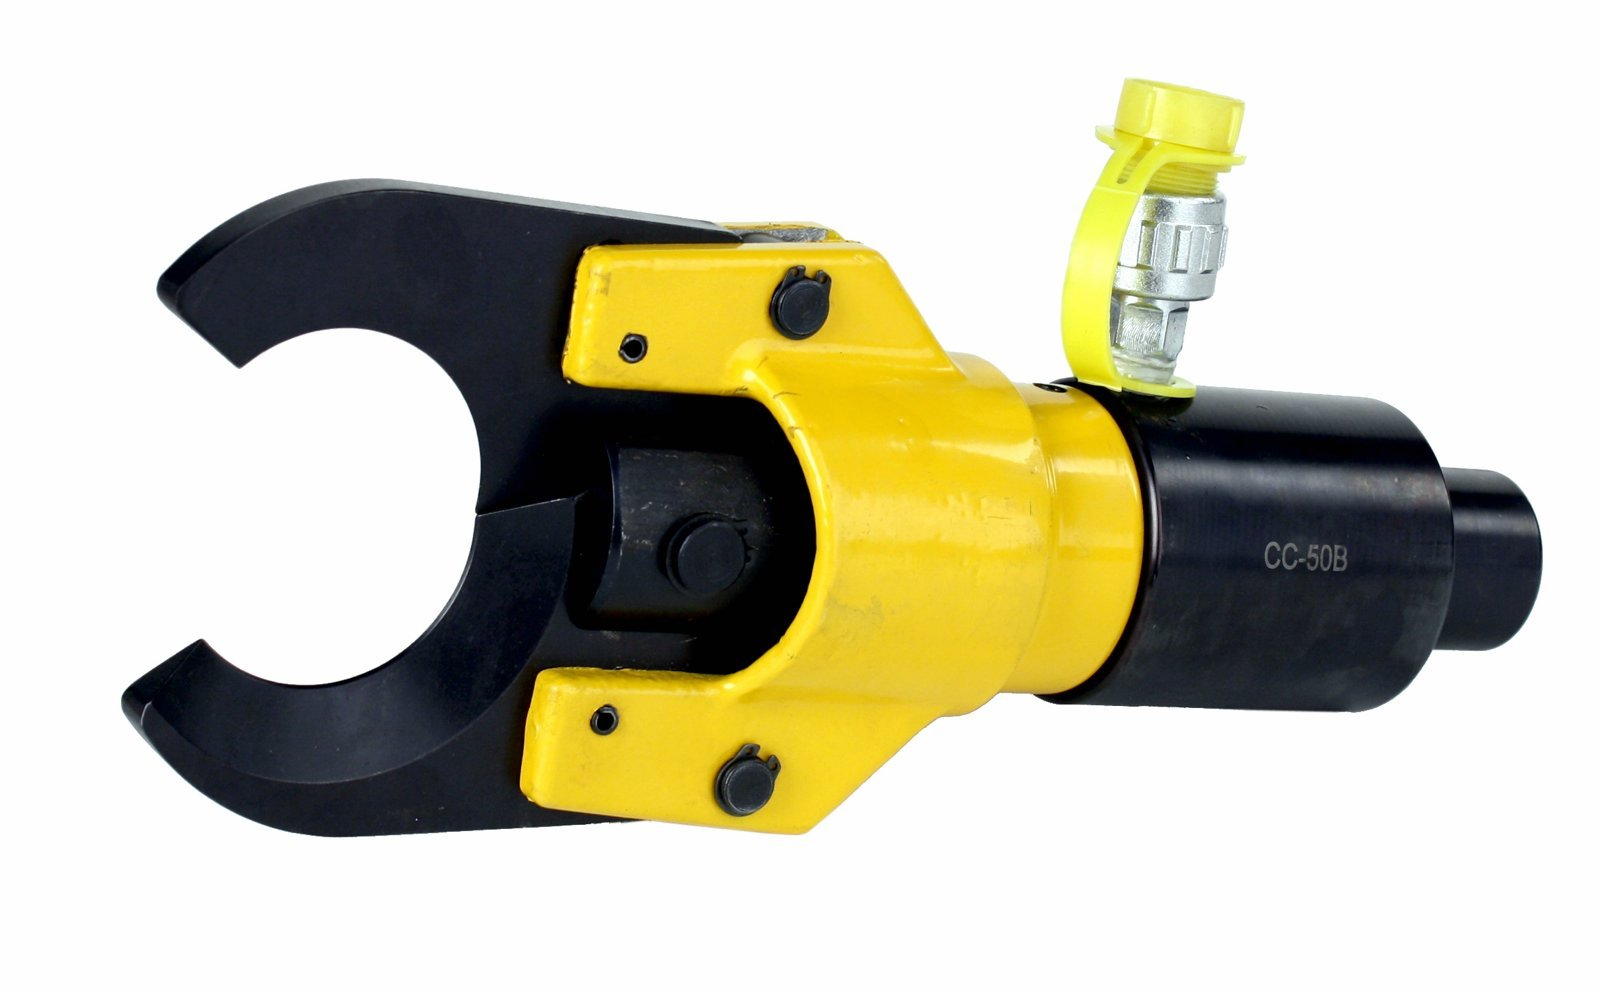 Steel Dragon Tools 750 12 Ton Hydraulic Wire Cable Cutter Head for Aluminum and Copper up to 2in. 50mm fits GREENLEE 767